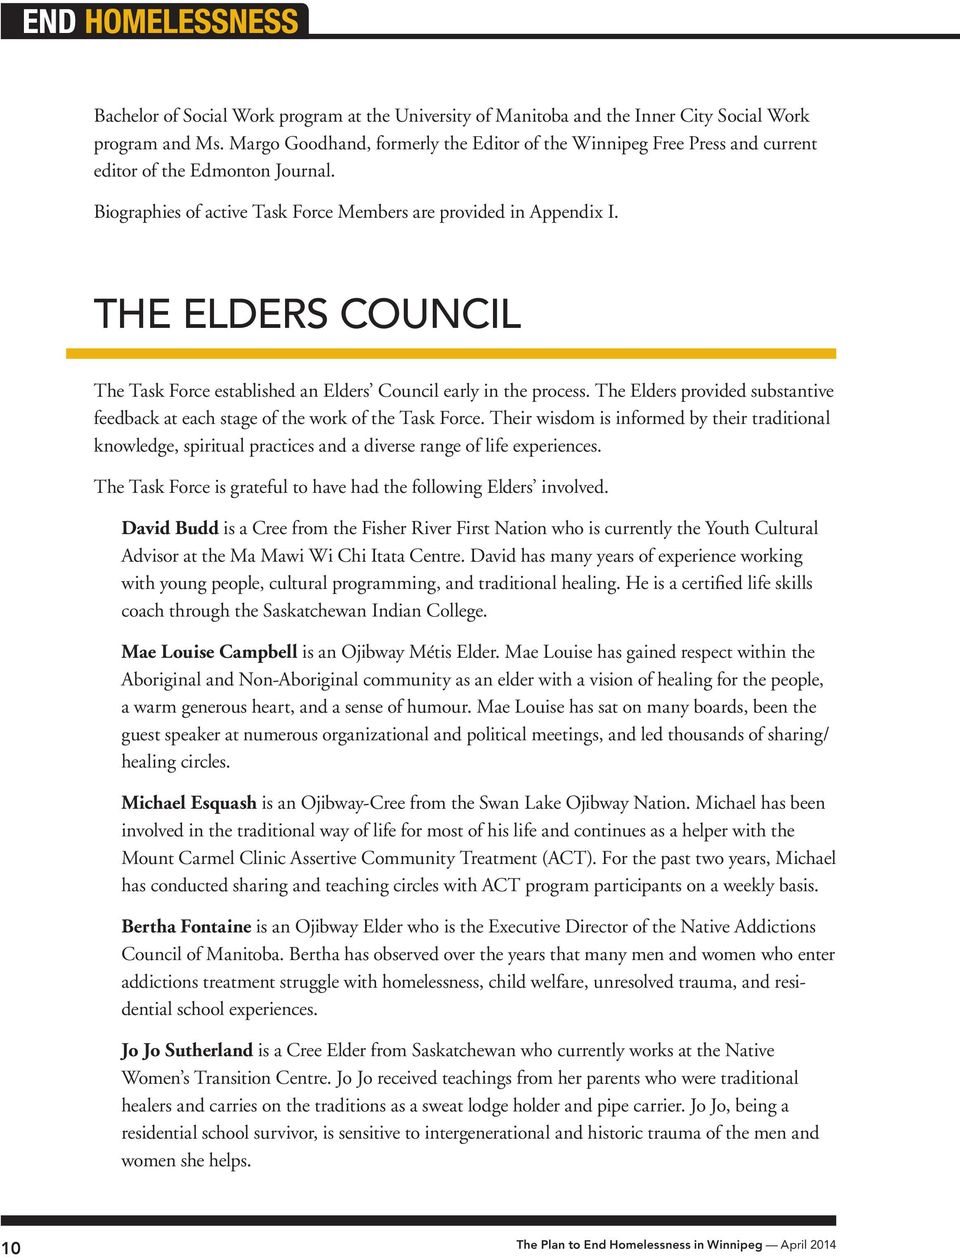 THE ELDERS COUNCIL The Task Force established an Elders Council early in the process. The Elders provided substantive feedback at each stage of the work of the Task Force.